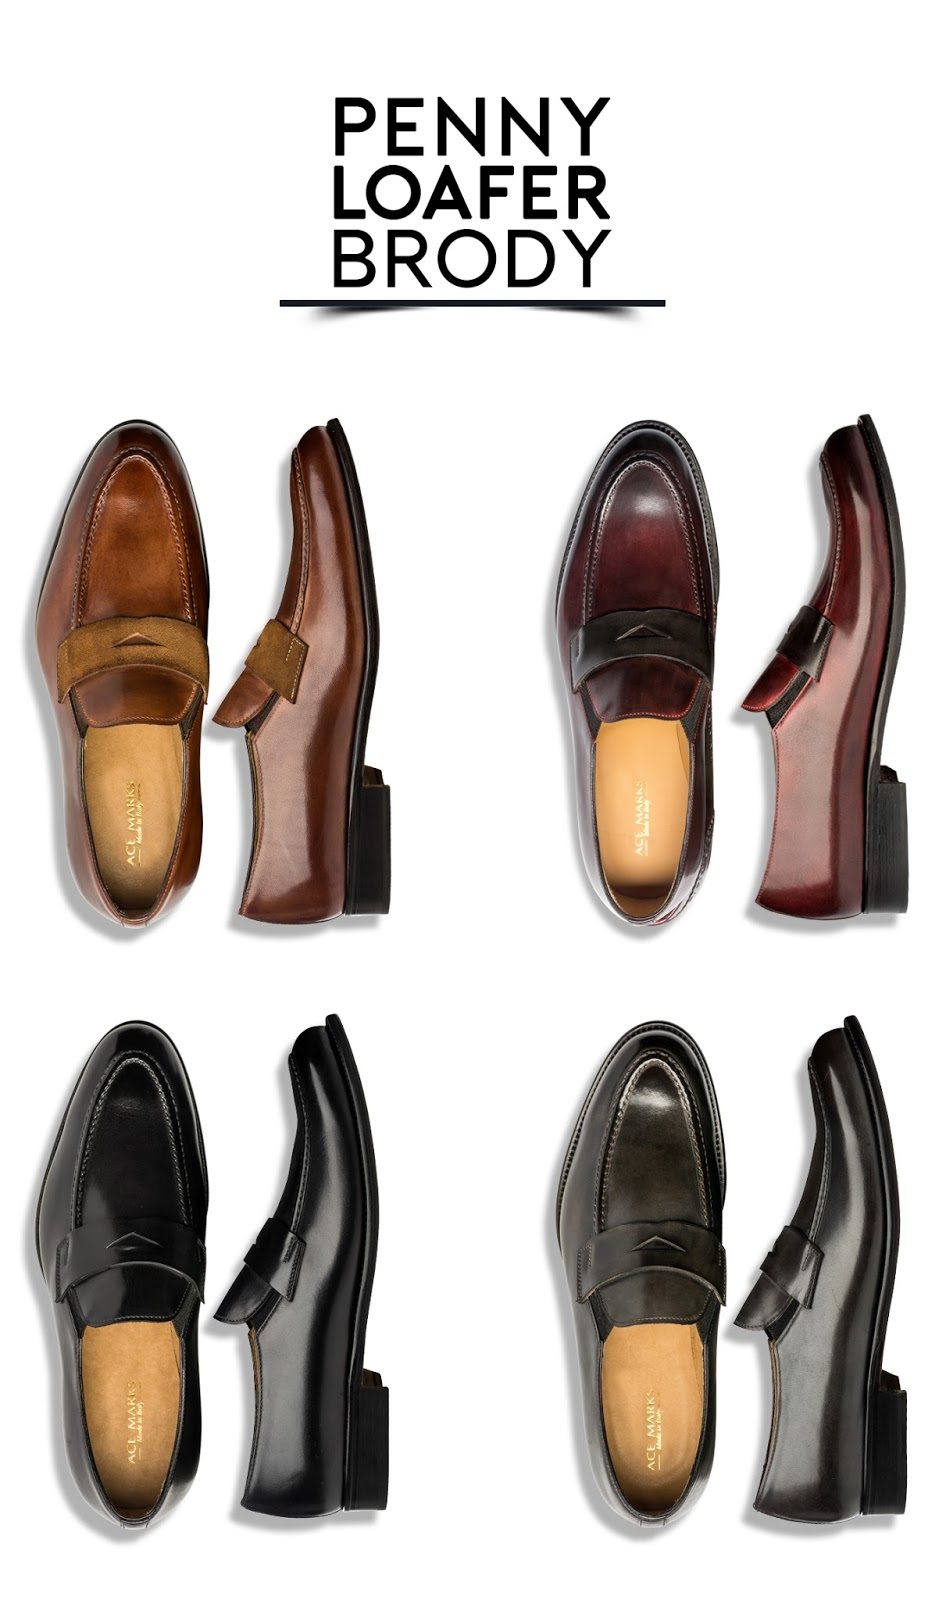 8c2c16be088 They wanted to provide professionals with the ability to wear a dress shoe  that is very stylish but still professional. Ace Marks were designed for  the ...